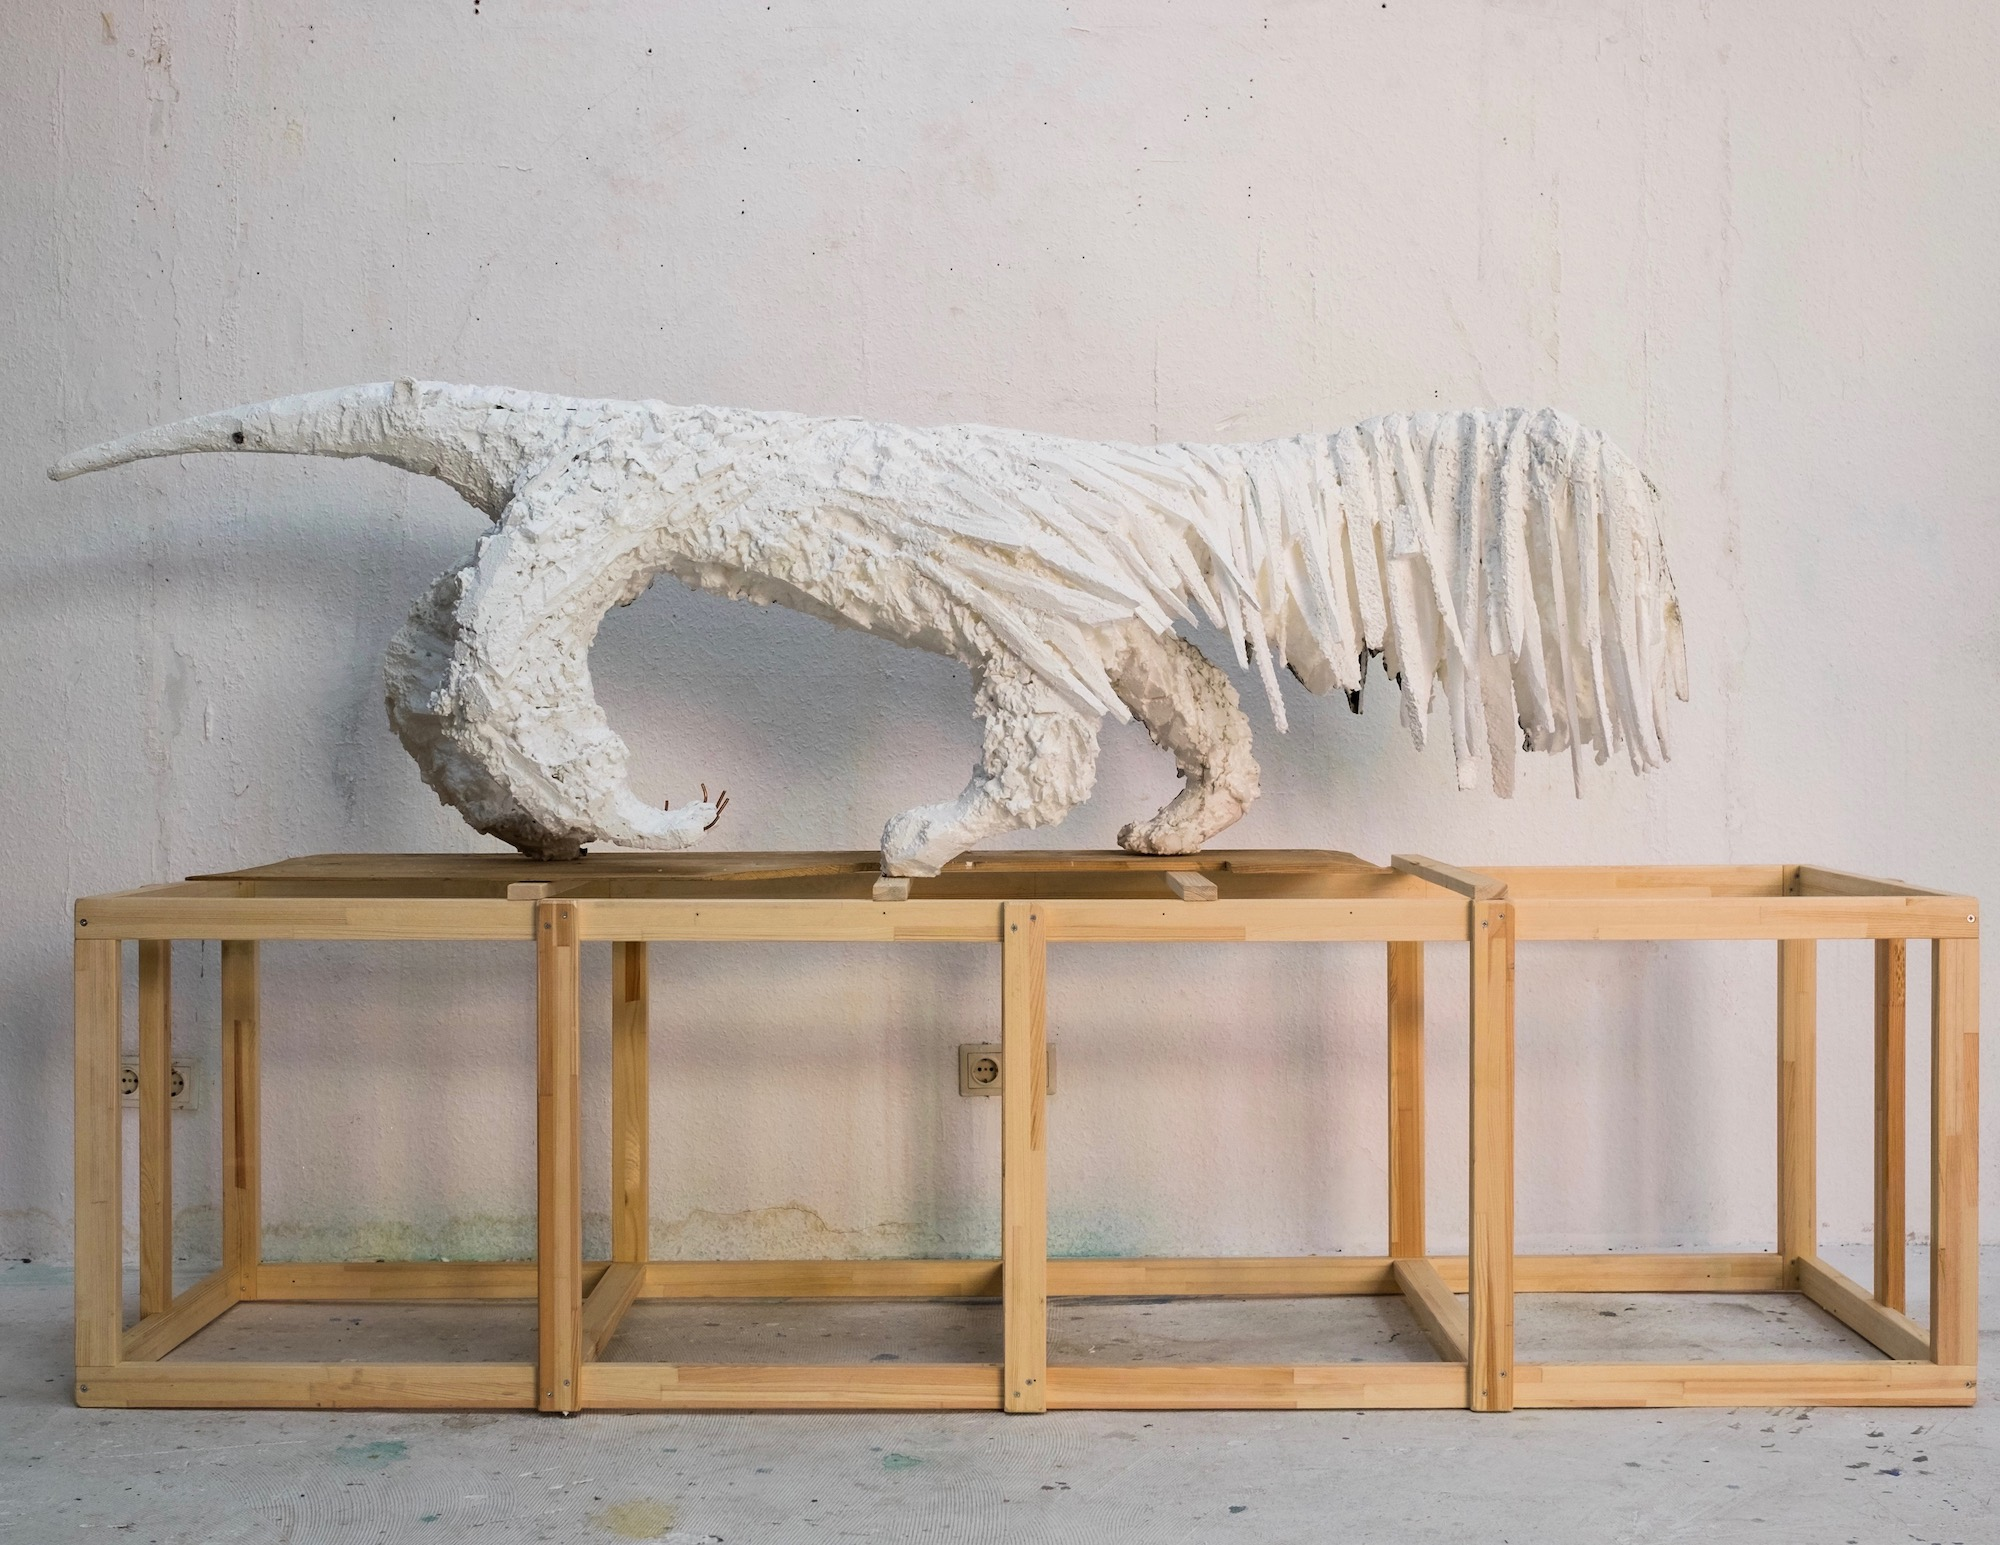 Lin May Saeed, Ameisenbaer /Anteater, 2018. Courtesy Jacky Strenz, Frankfurt; Nicolas Krupp, Basel and the artist